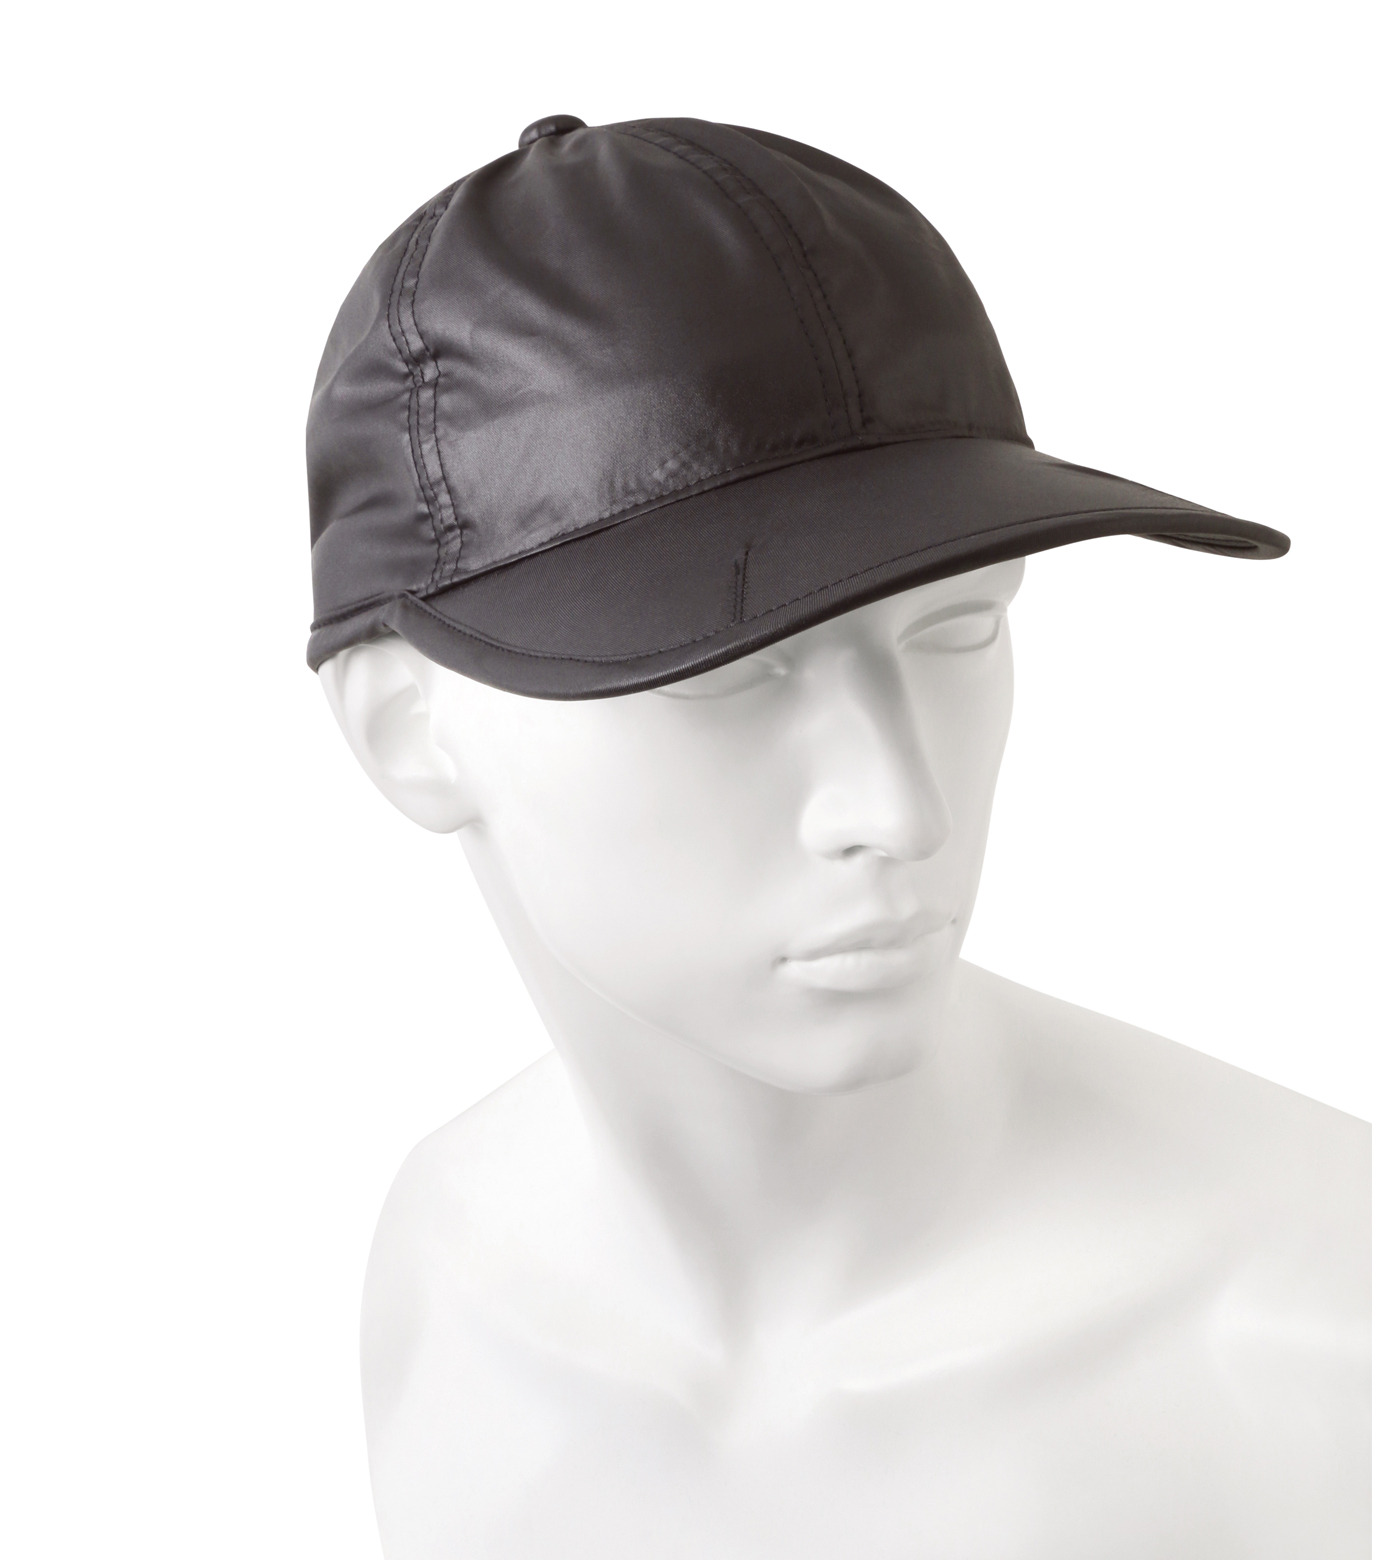 HEY YOU !(ヘイユウ)のWASHED TWILL CAP-BLACK(HATS/HATS)-18S90023-13 拡大詳細画像4